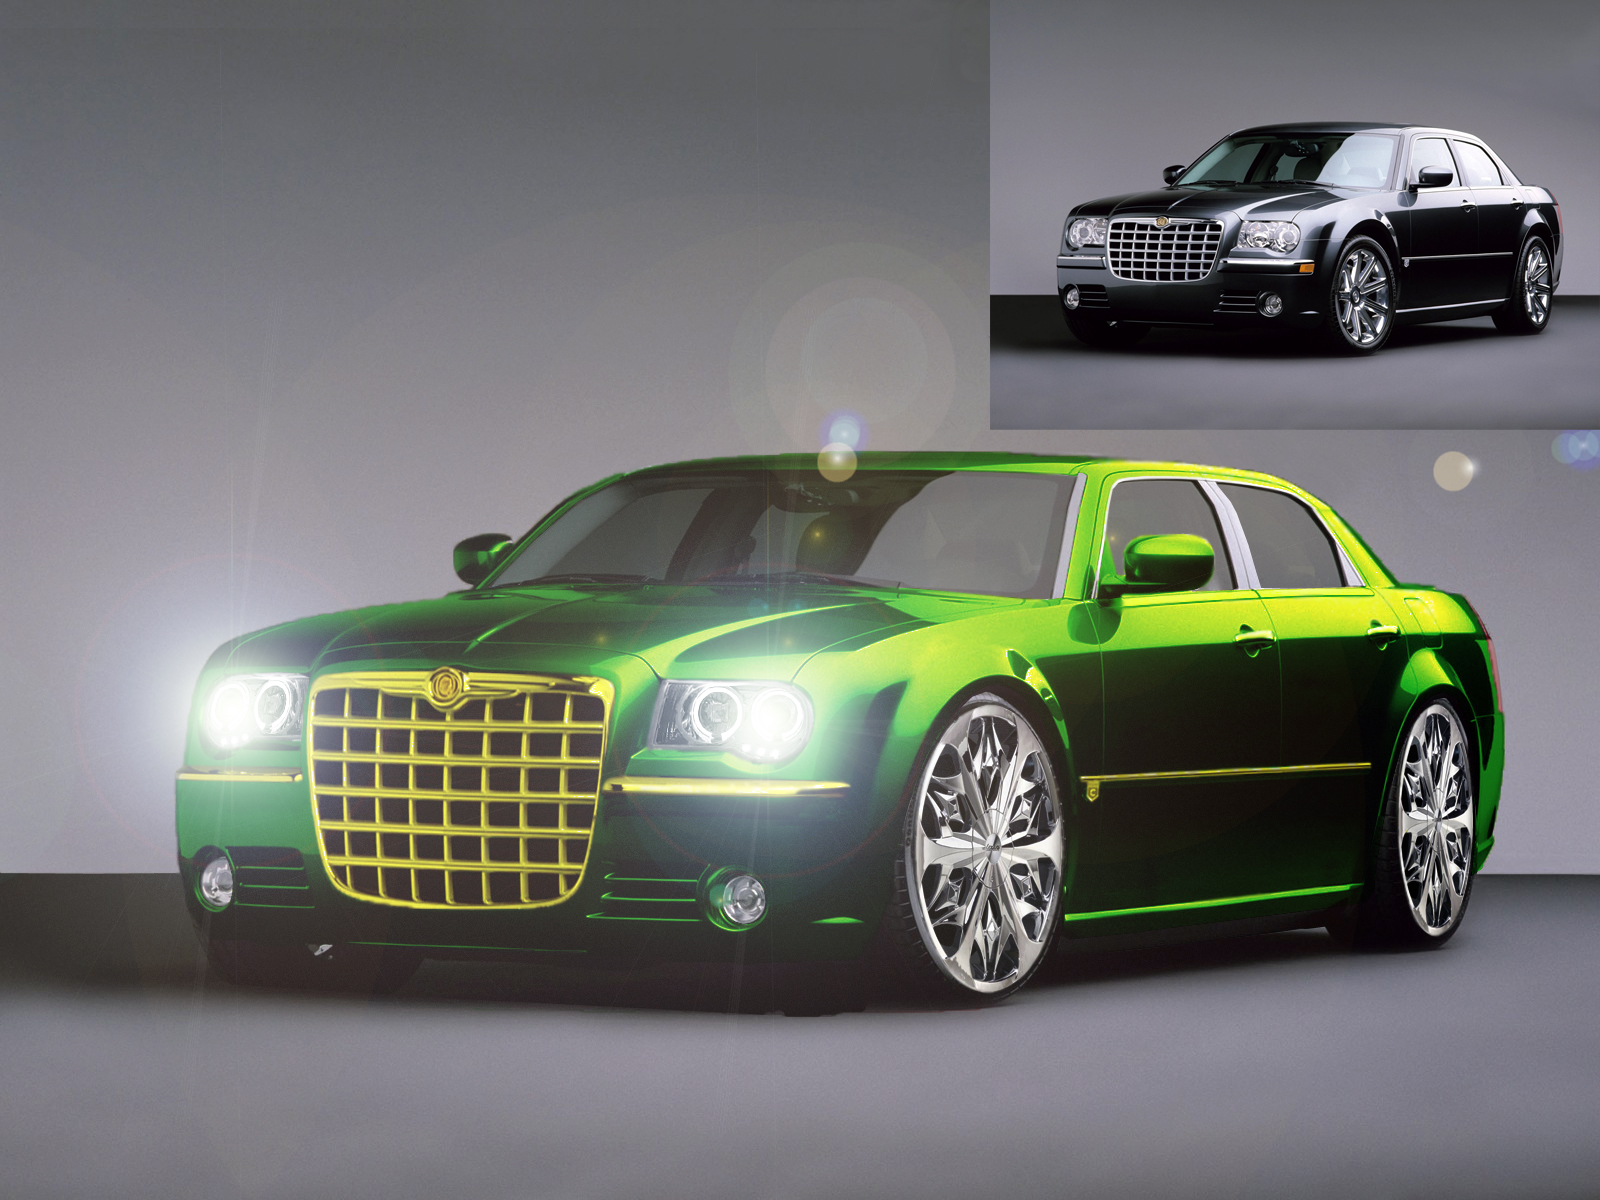 Chrysler Wallpaper For Pc Hd Car Wallpapers Download